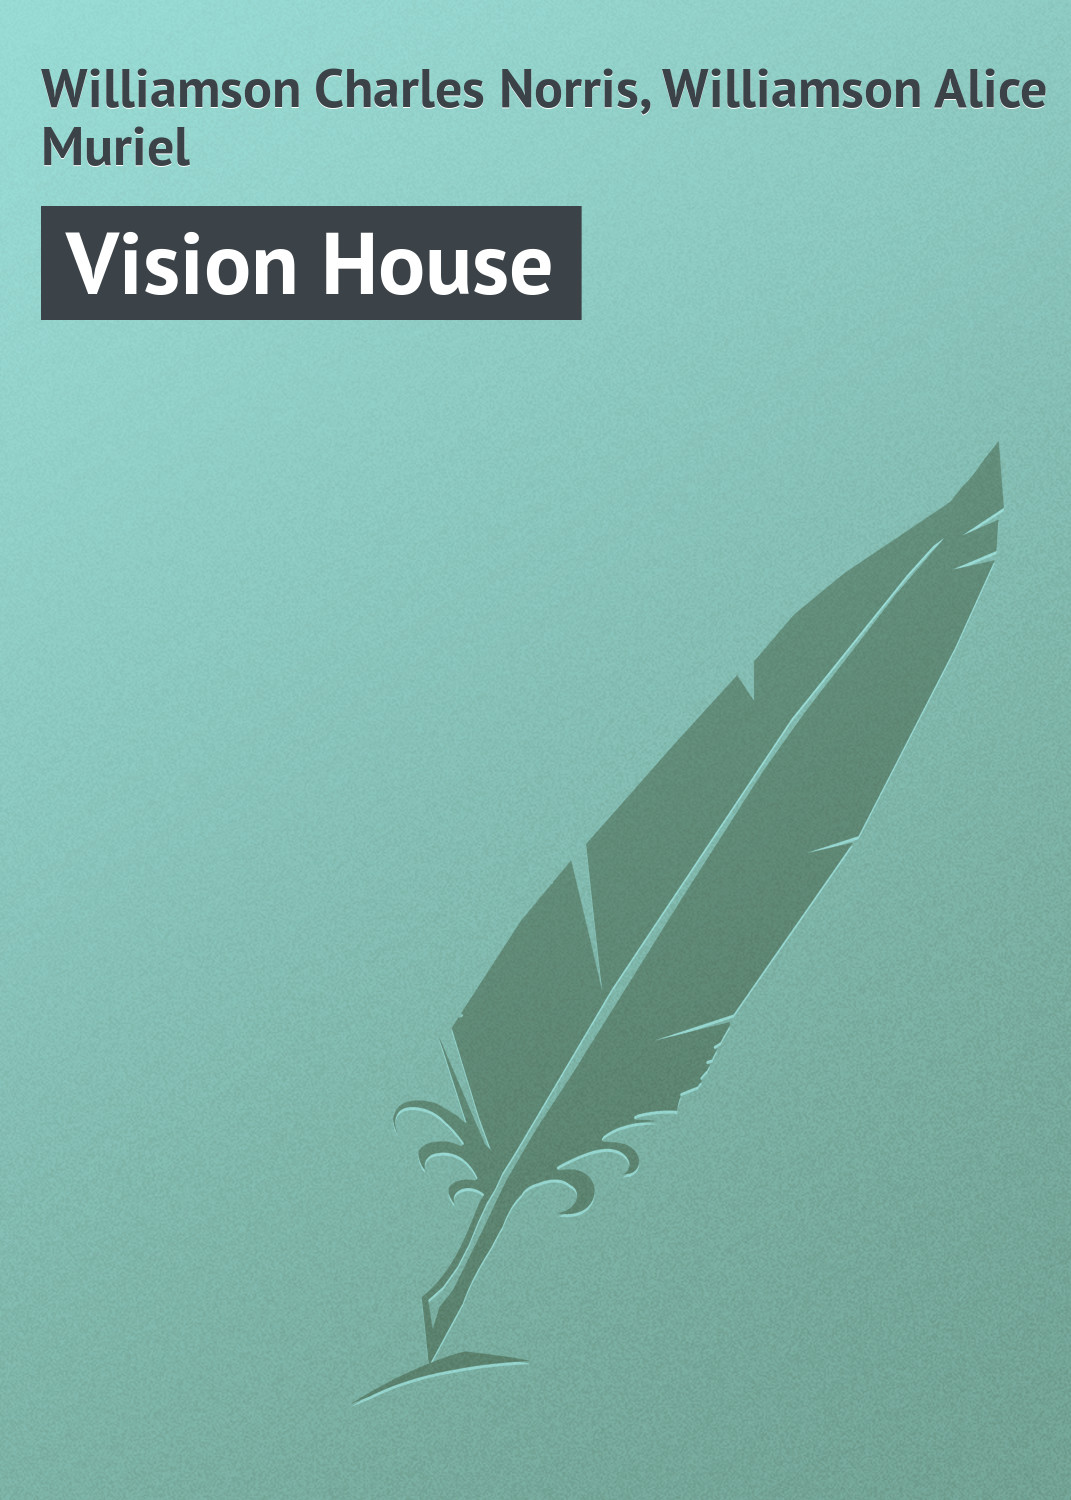 Williamson Charles Norris Vision House roy norris ready for cae coursebook with key